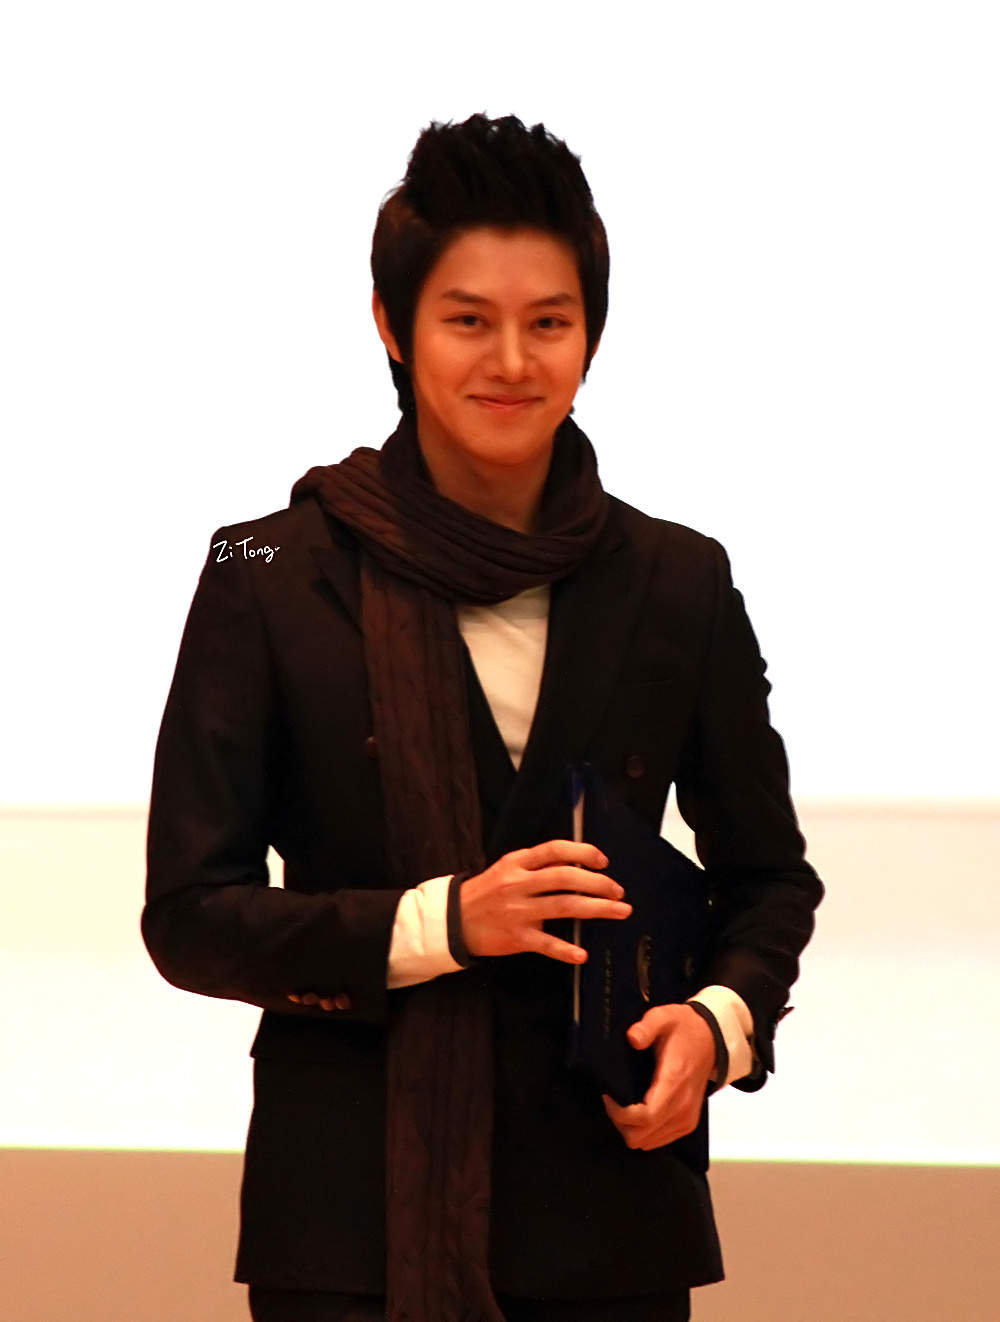 http://shinningsuju.files.wordpress.com/2012/01/h6.jpg